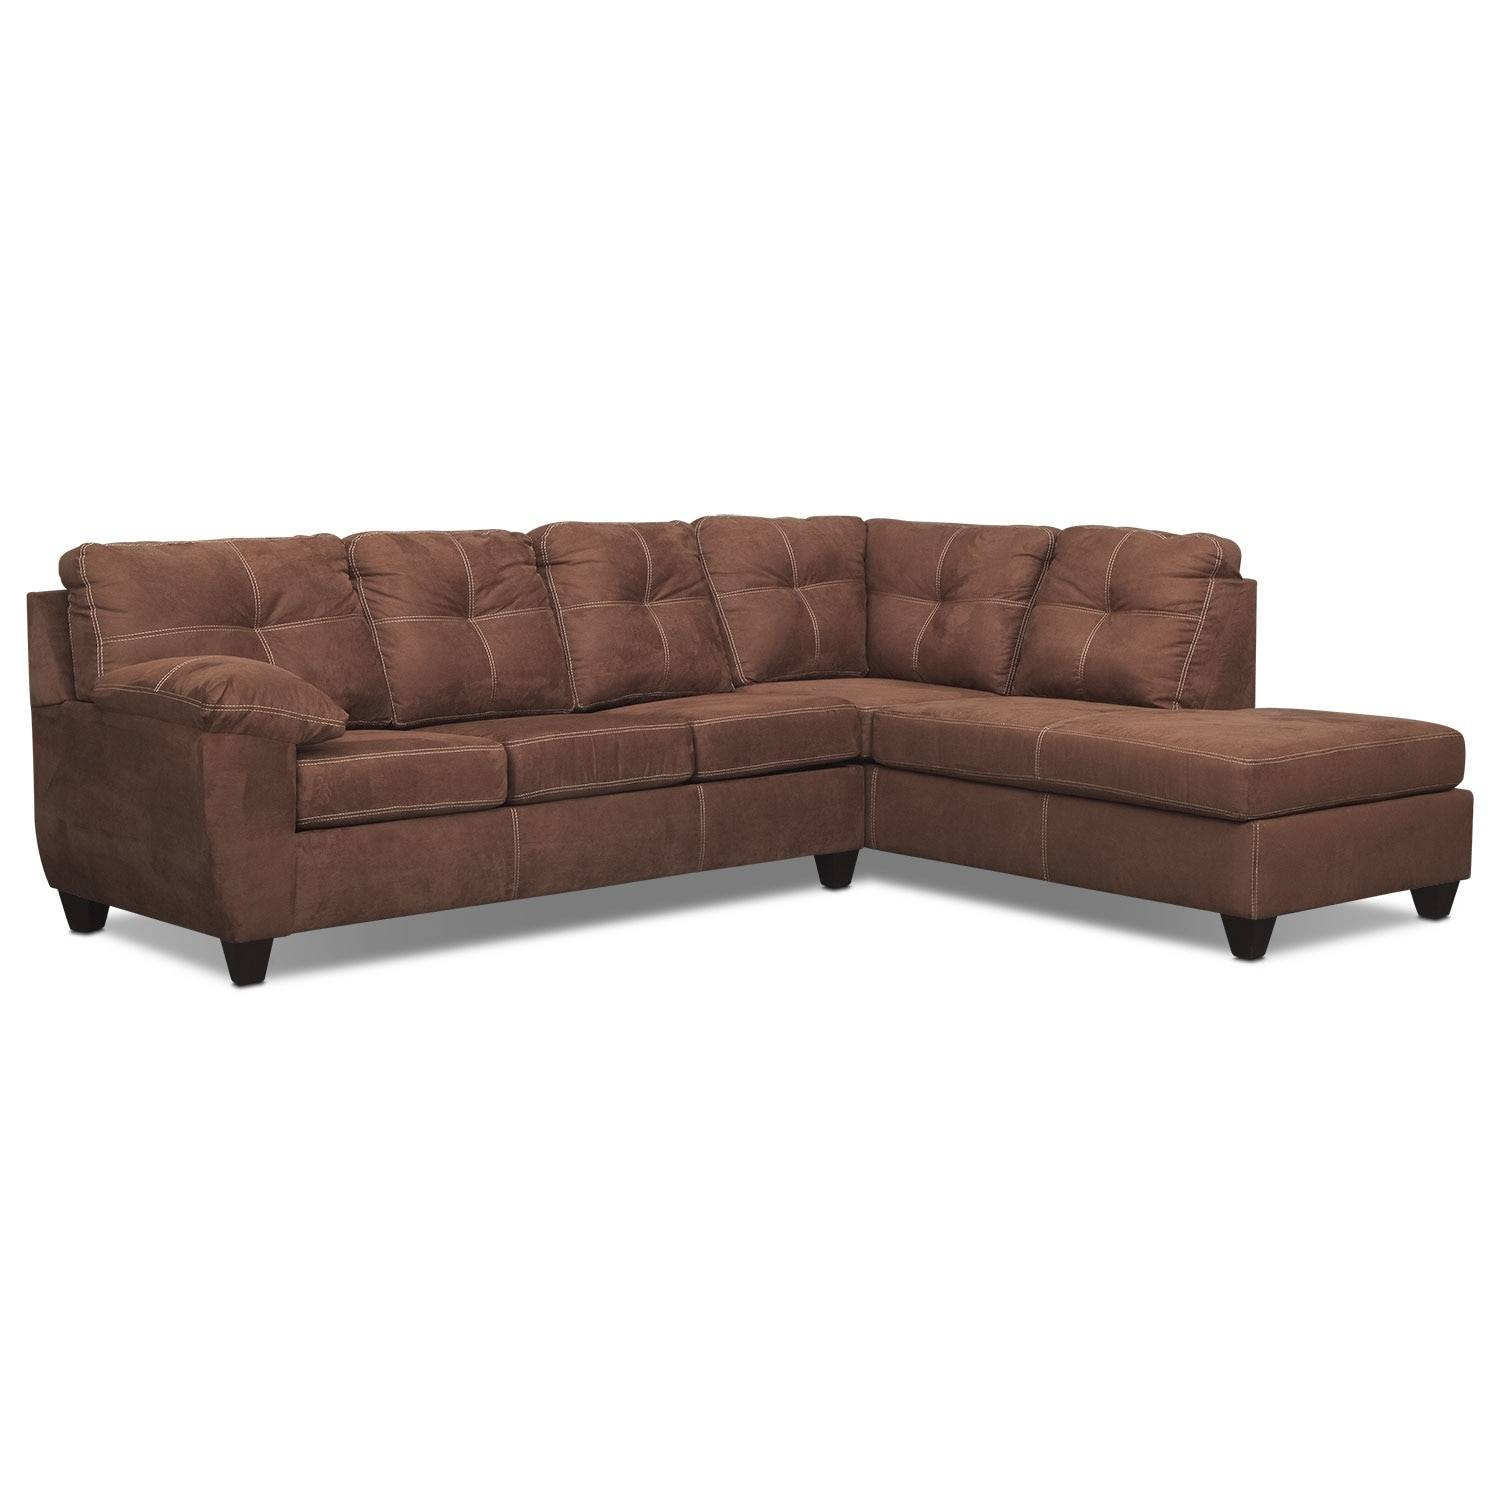 Sleeper Sofas | Value City Furniture | Value City Furniture for Full Size Sofa Sleepers (Image 12 of 30)